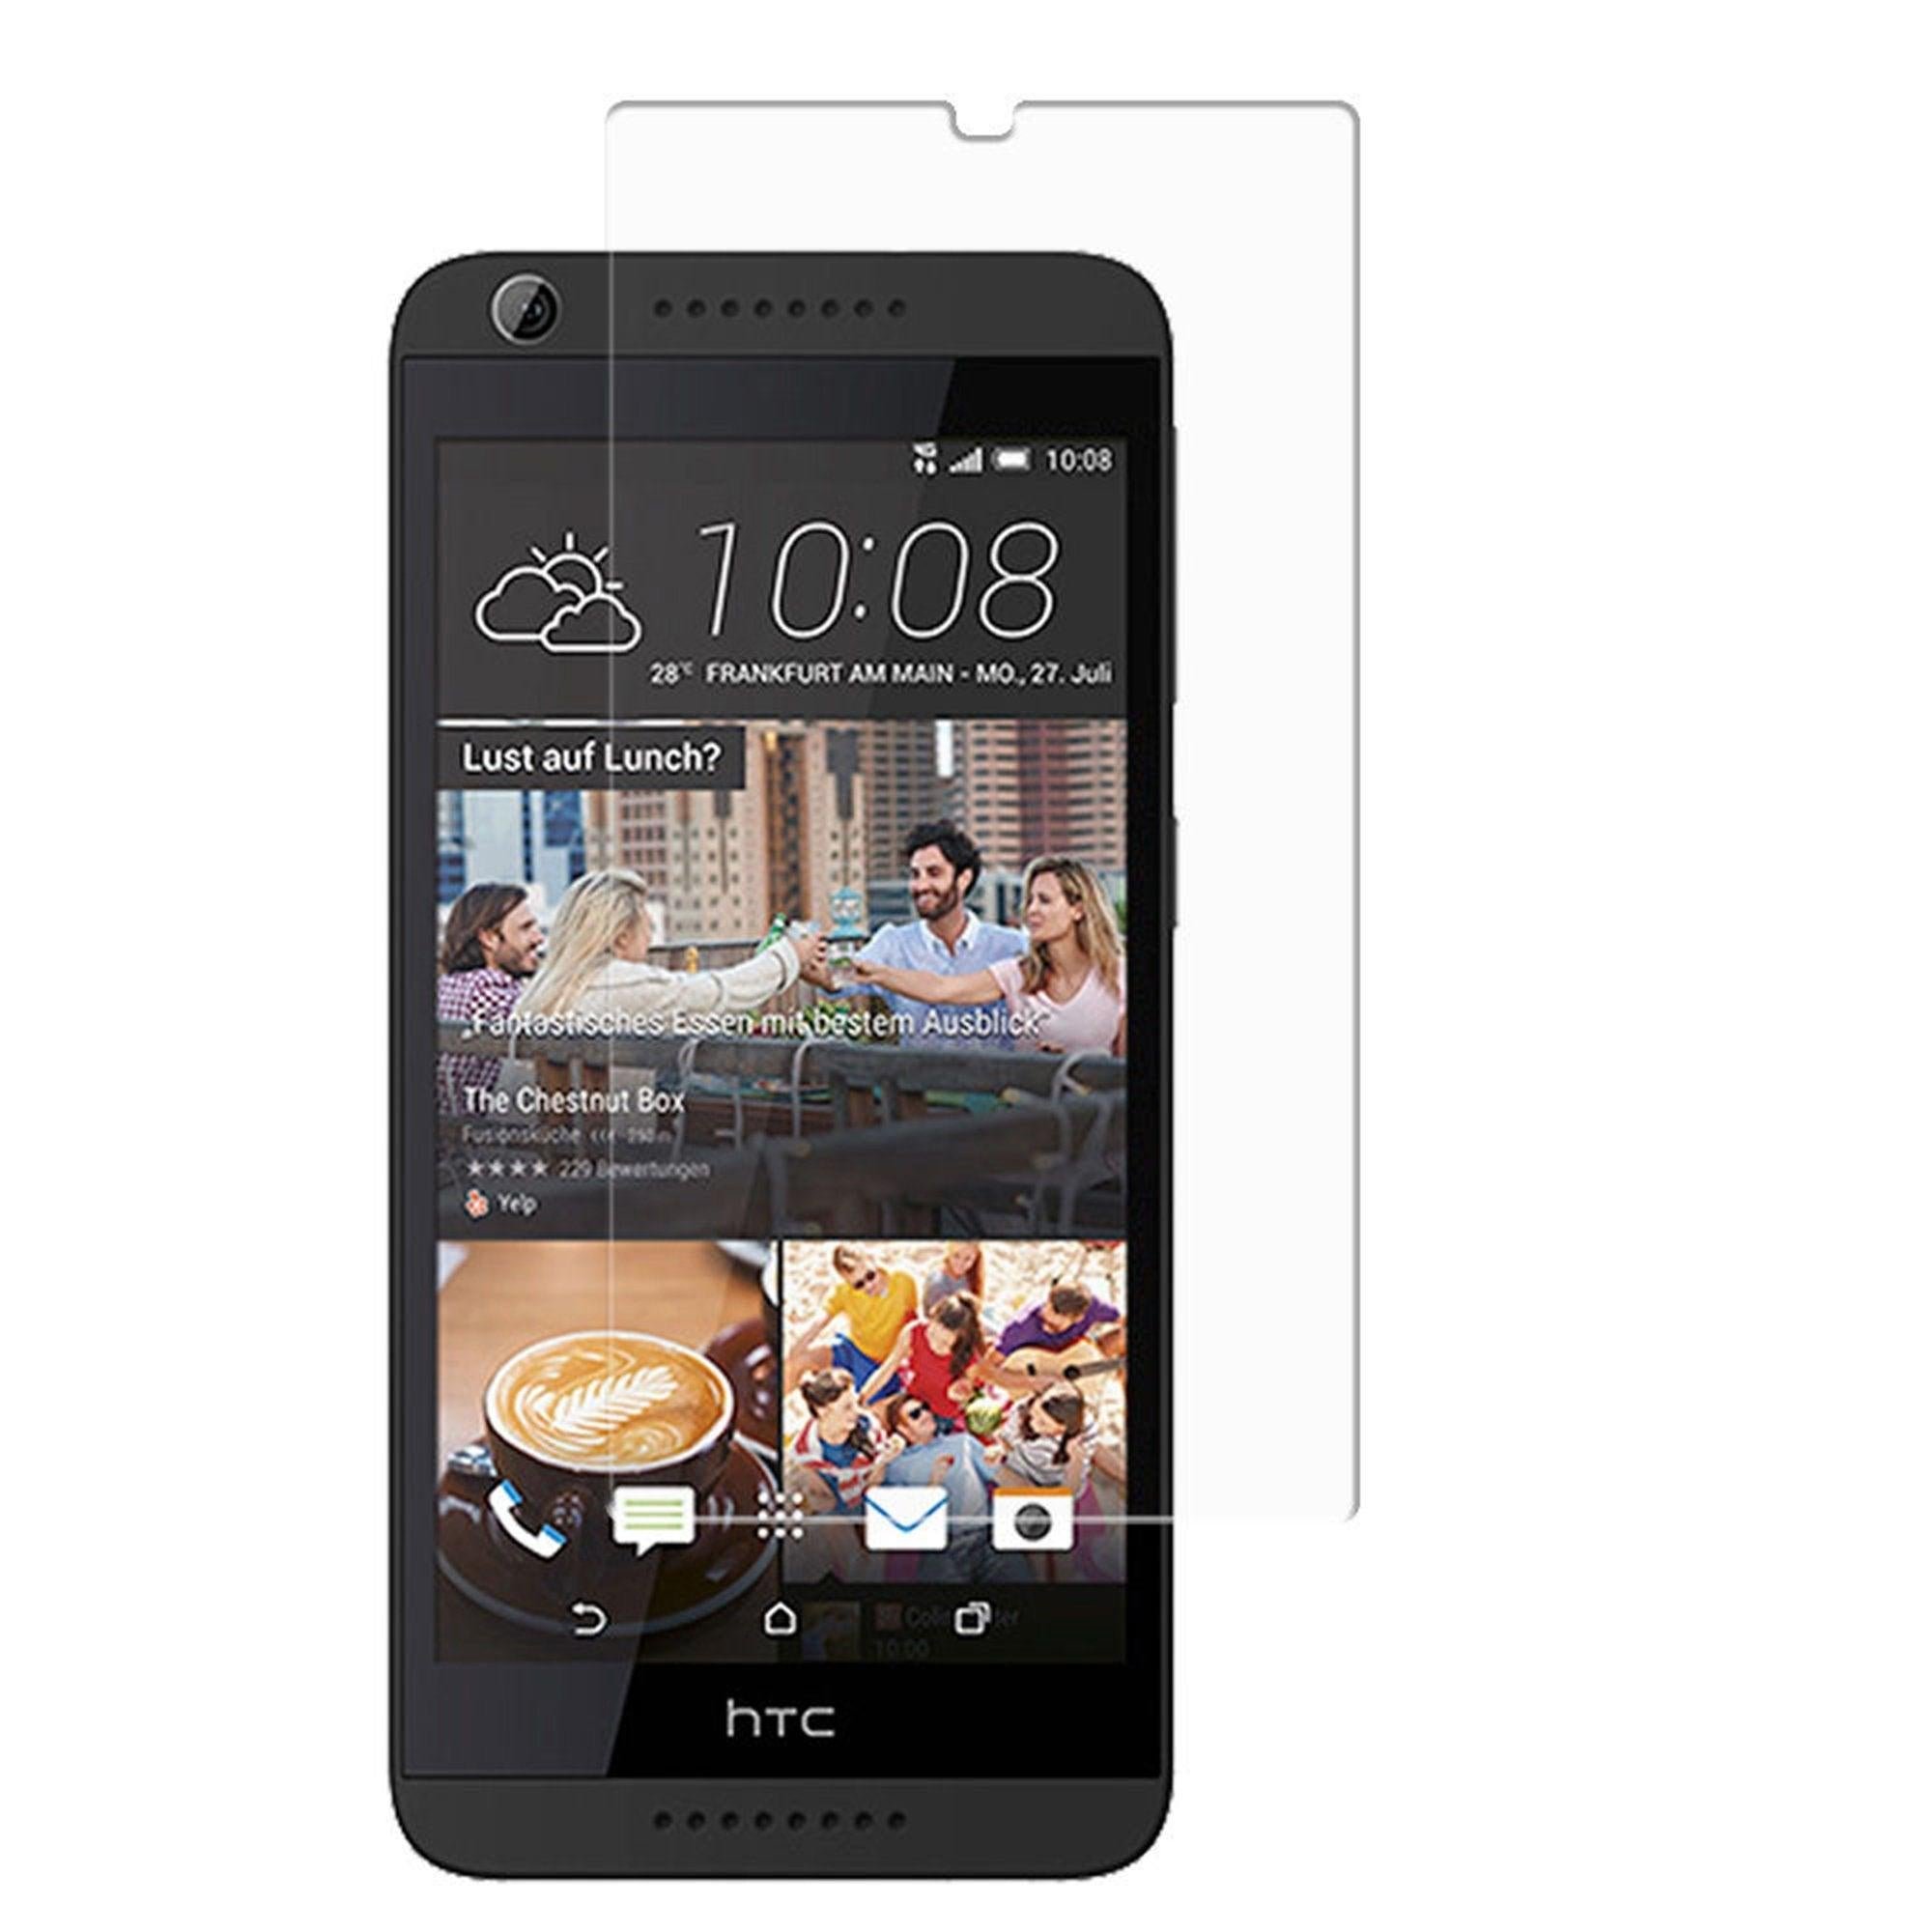 HTC Desire 530 / Desire 630 Tempered Glass Screen Protector by Modes